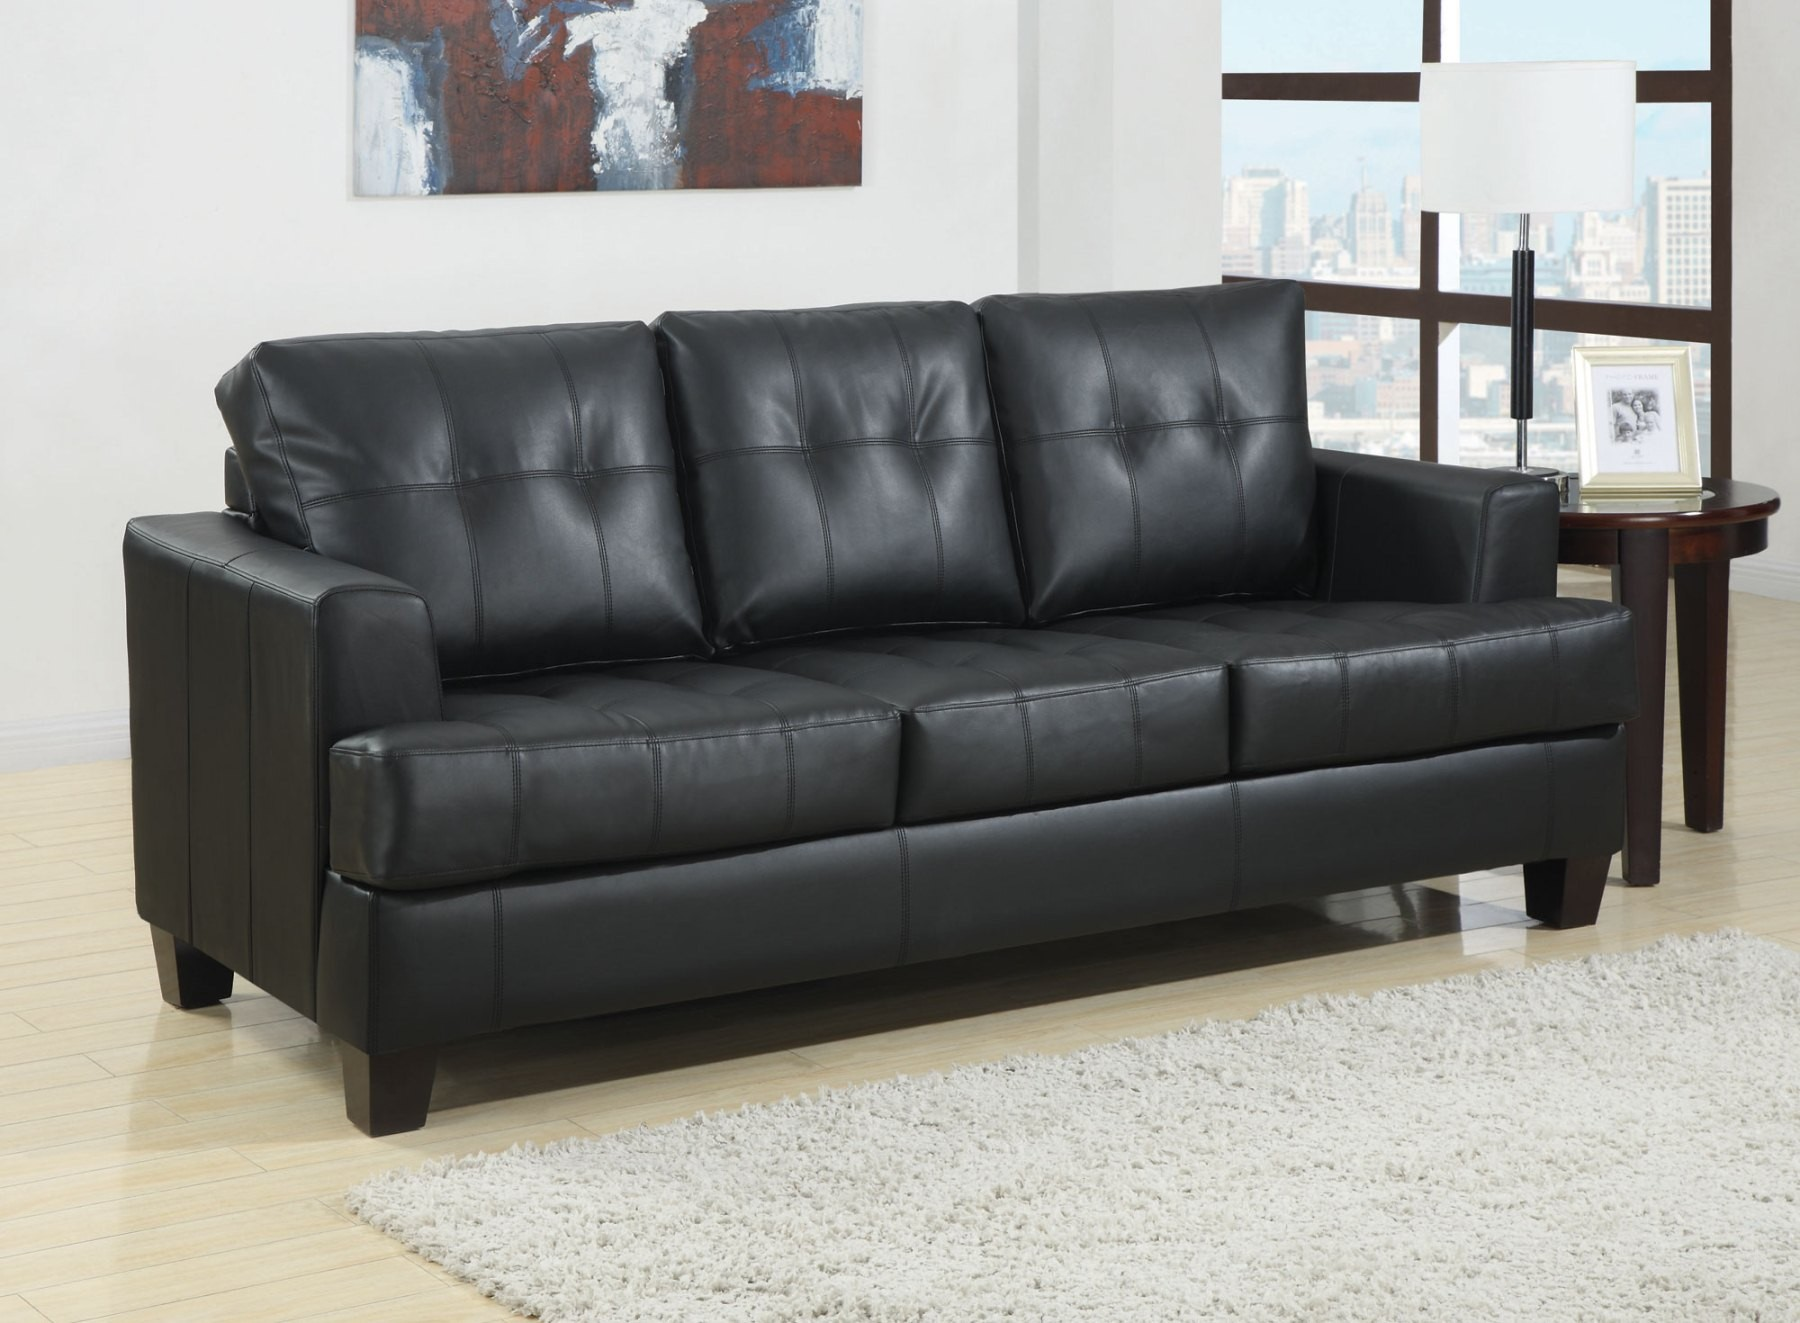 7 Pc Black Sofa Living Room Package With 50 HDTV